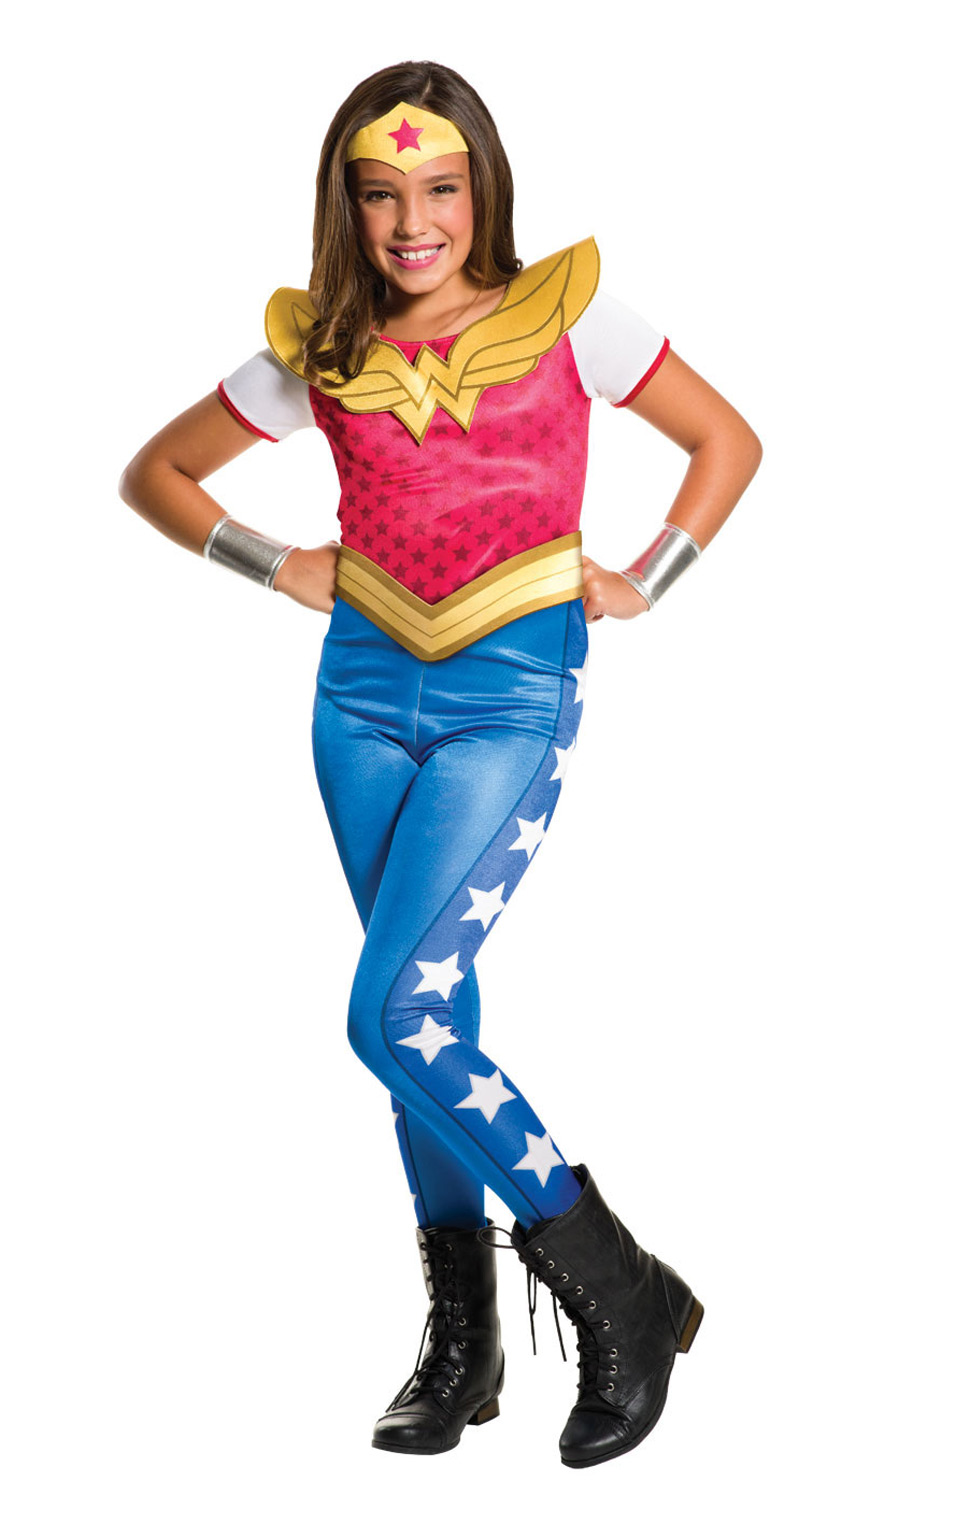 ... Picture 2 of 2  sc 1 st  eBay & Wonder Woman Costume Kids DC Super Hero Girls Outfit Large Age 8 ...